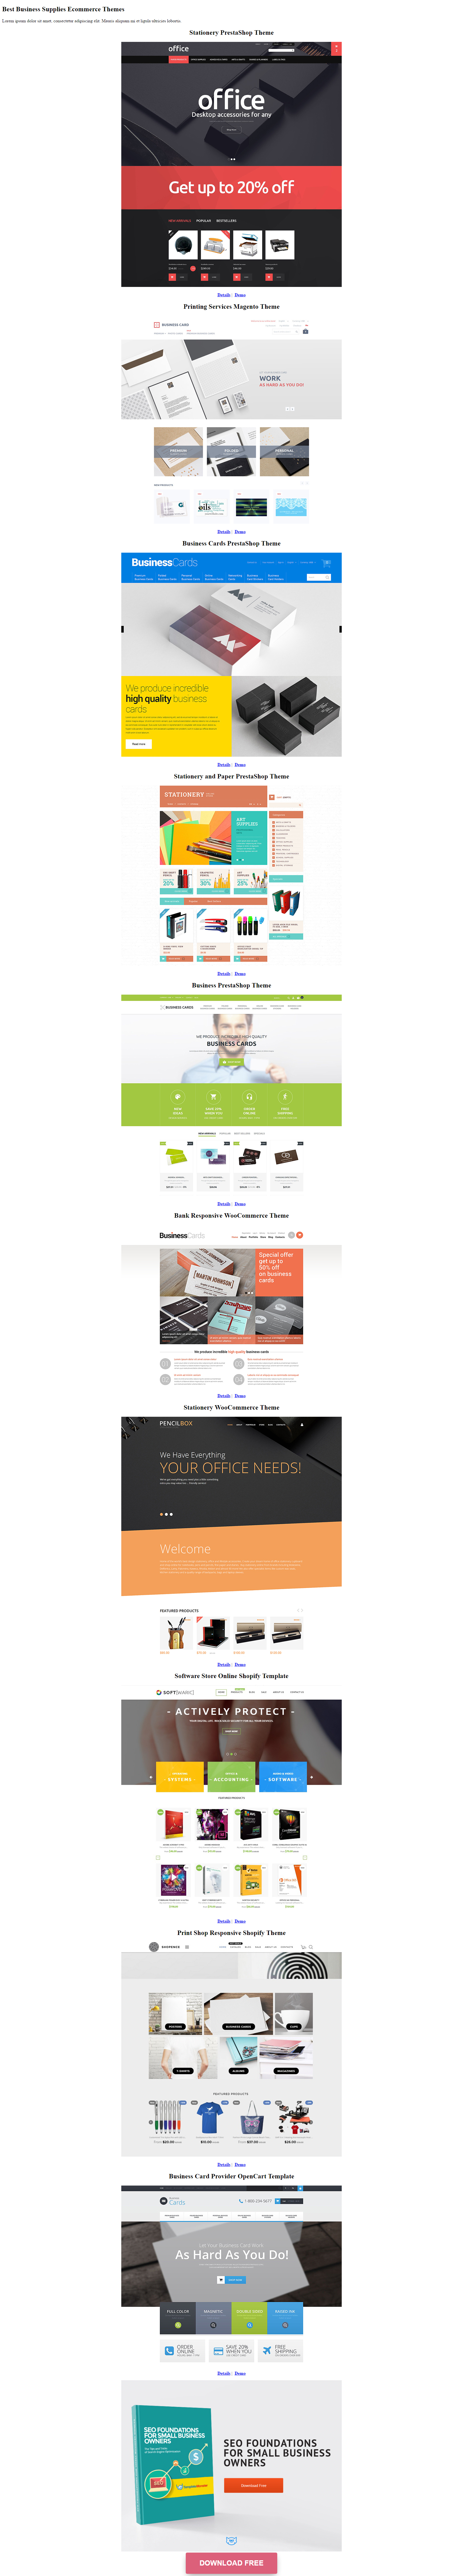 Best-Business-Supplies-Ecommerce-Themes-